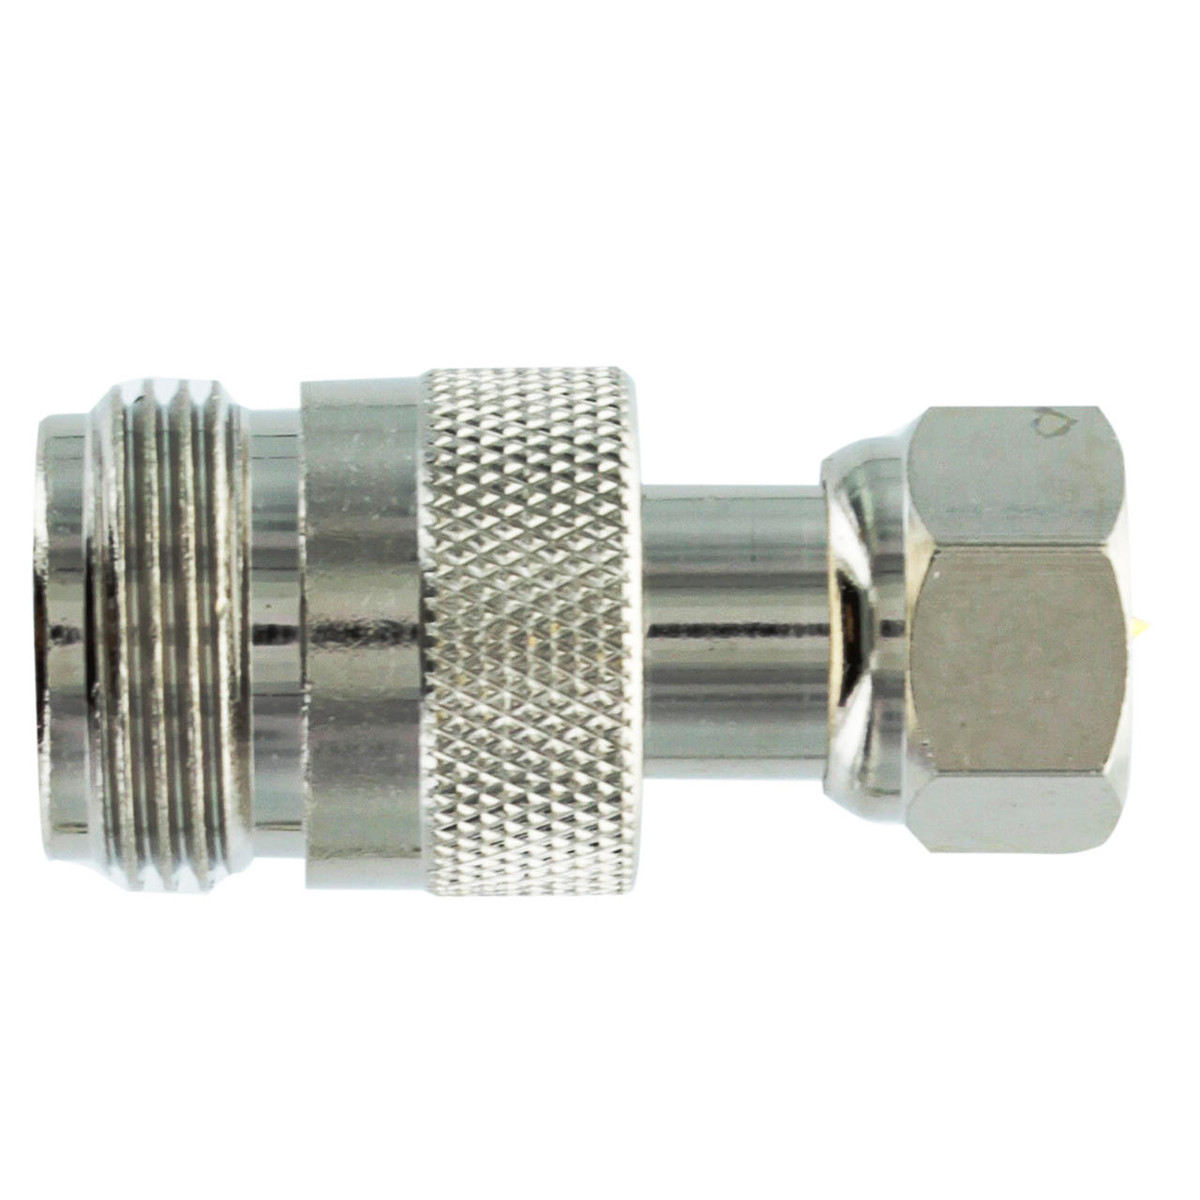 Wilson Electronics weBoost Wilson 971151 F-Male to N-Female Connector